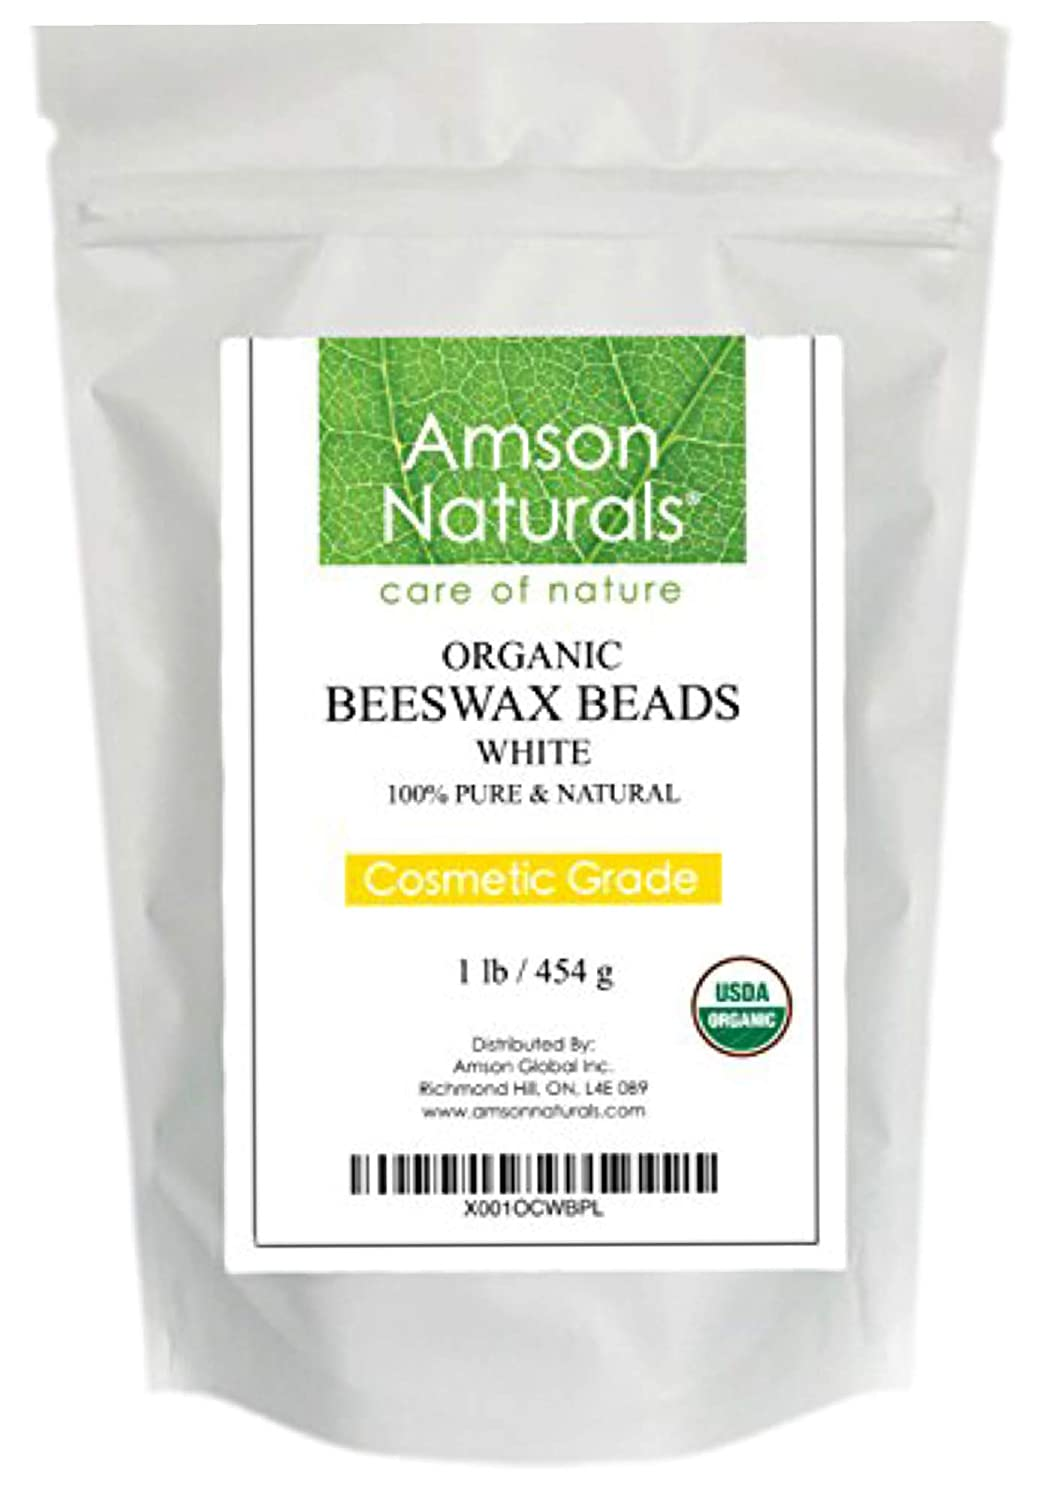 BEESWAX PELLETS WHITE 16oz/1lb -USDA Organic - by Amson Naturals –100% Pure & Natural Premium Quality Beeswax- 3 x Filtered, Natural mild sweet Aroma, Easy Melt Pastilles- for DIY, Candles, Skin Care, Lip Balm, Lotion, Deodorant, Furniture Polish, Cray